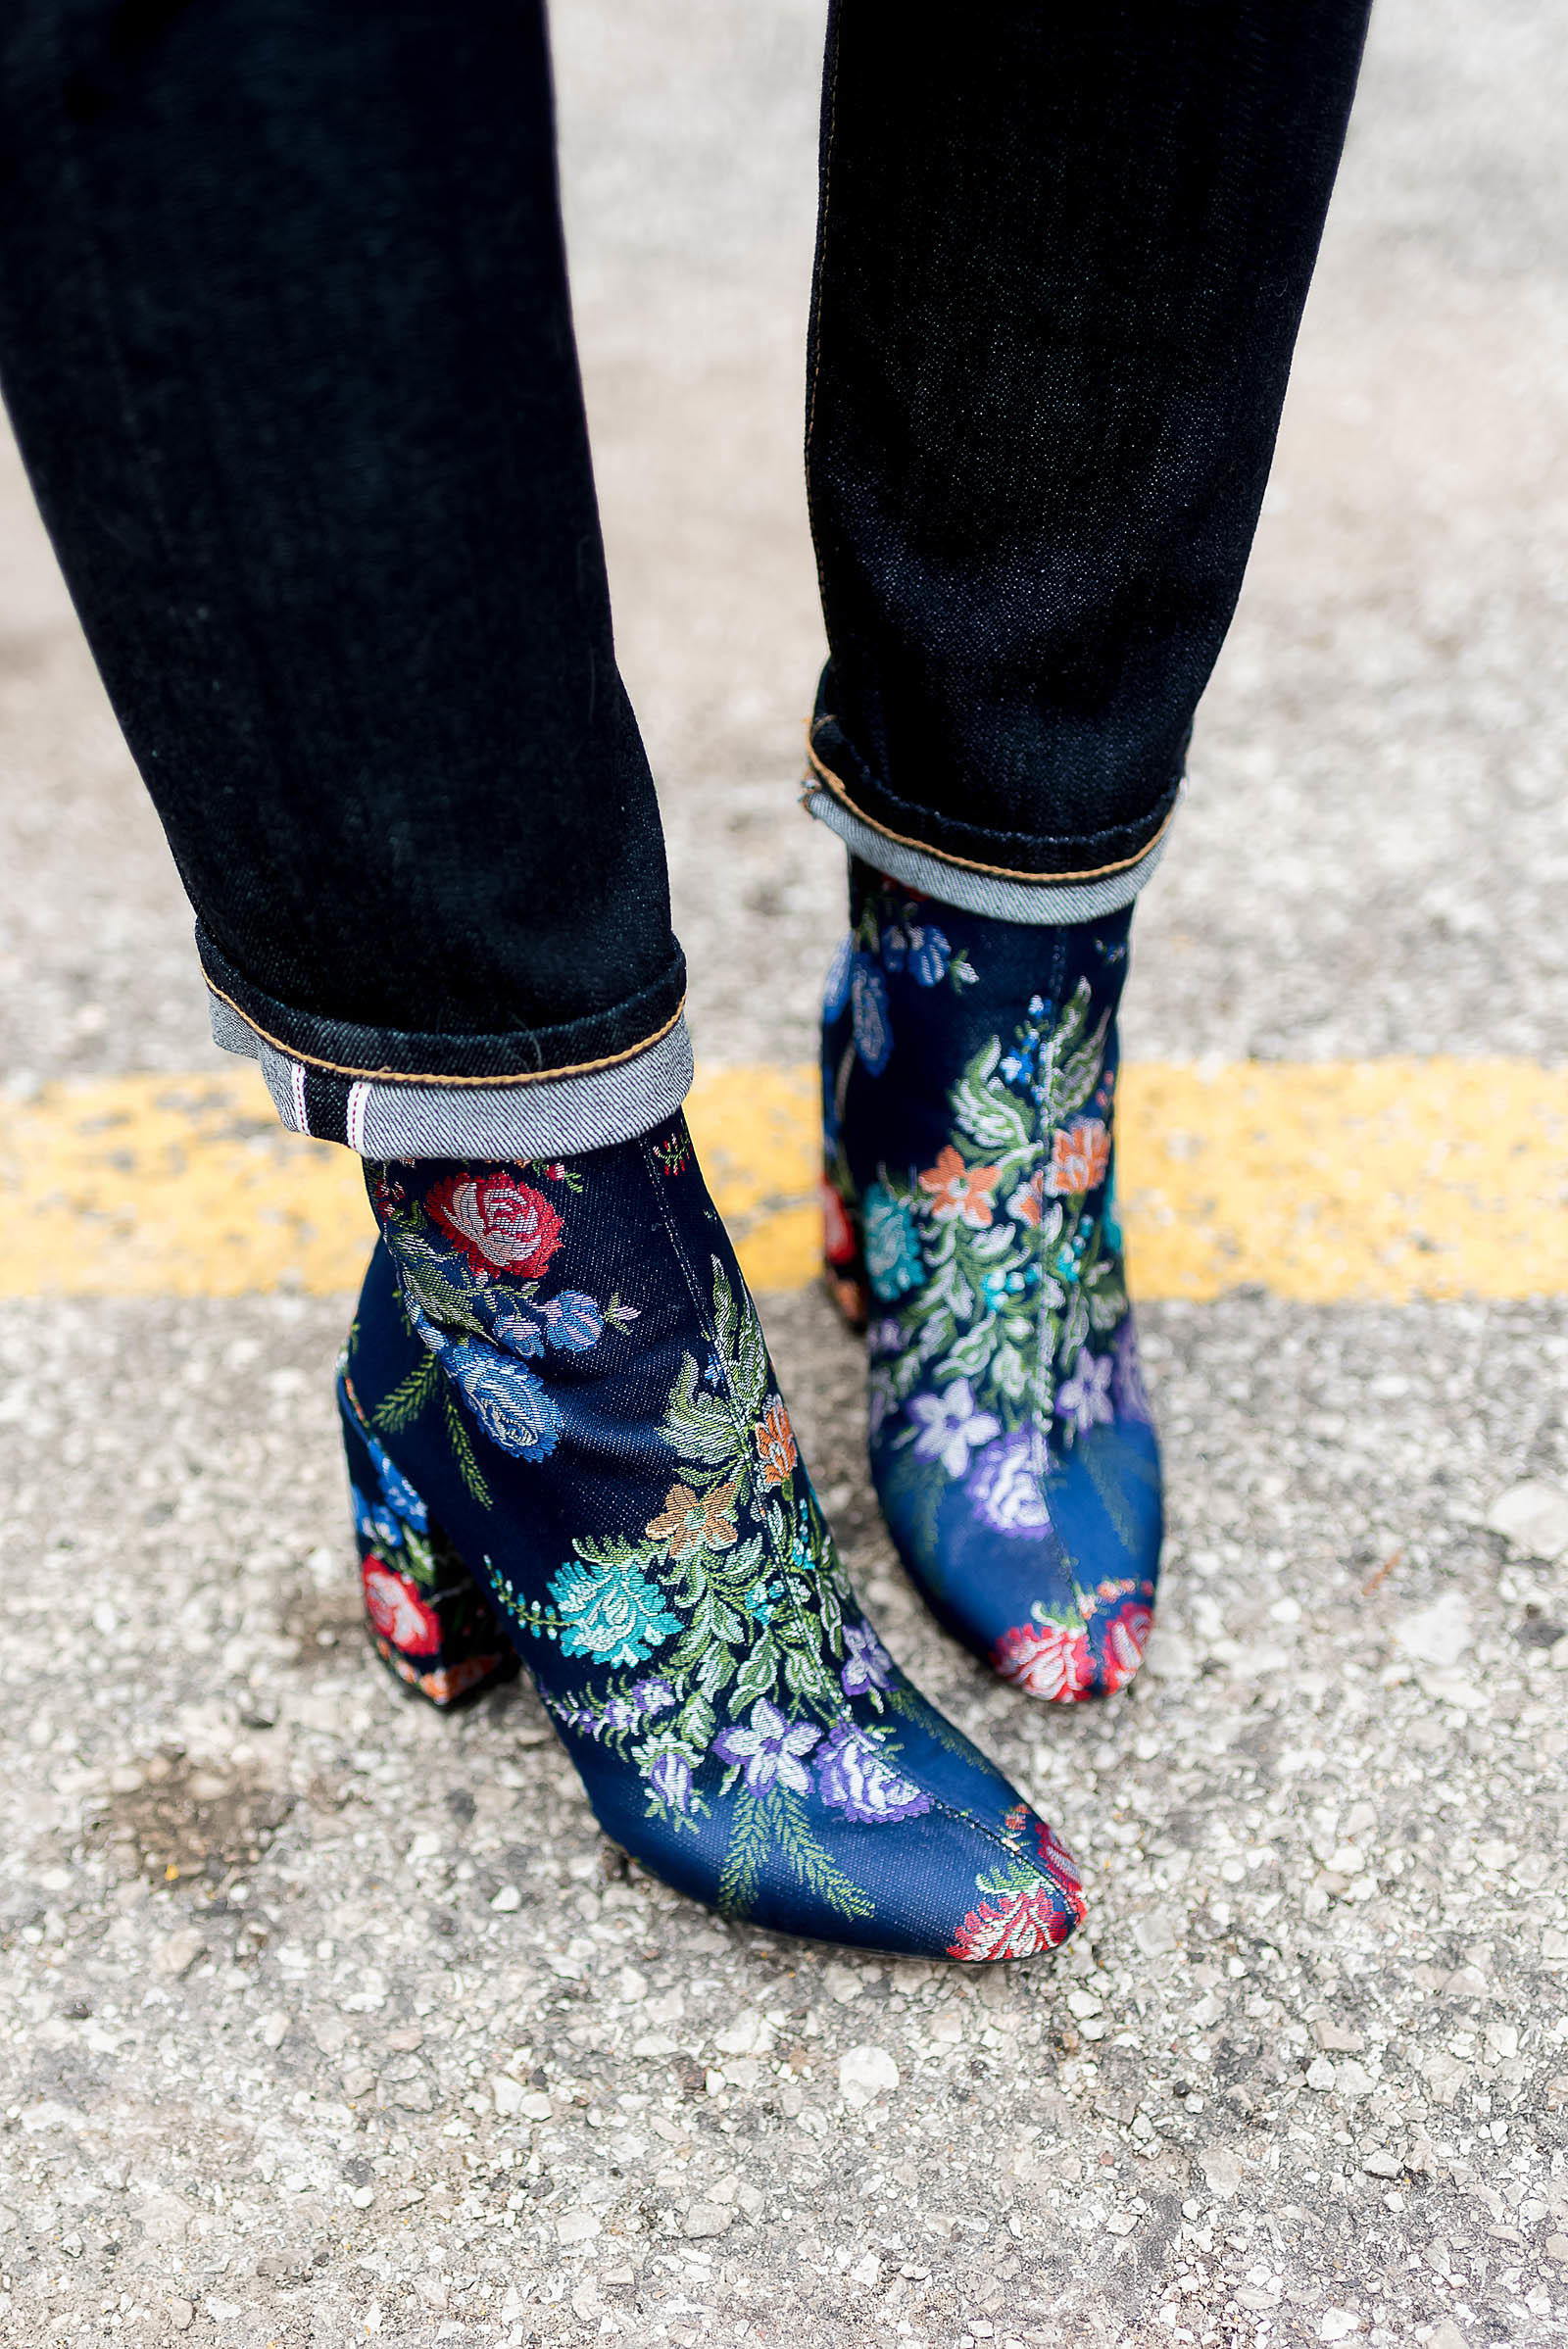 AG Jeans Embroidered Booties Outfit